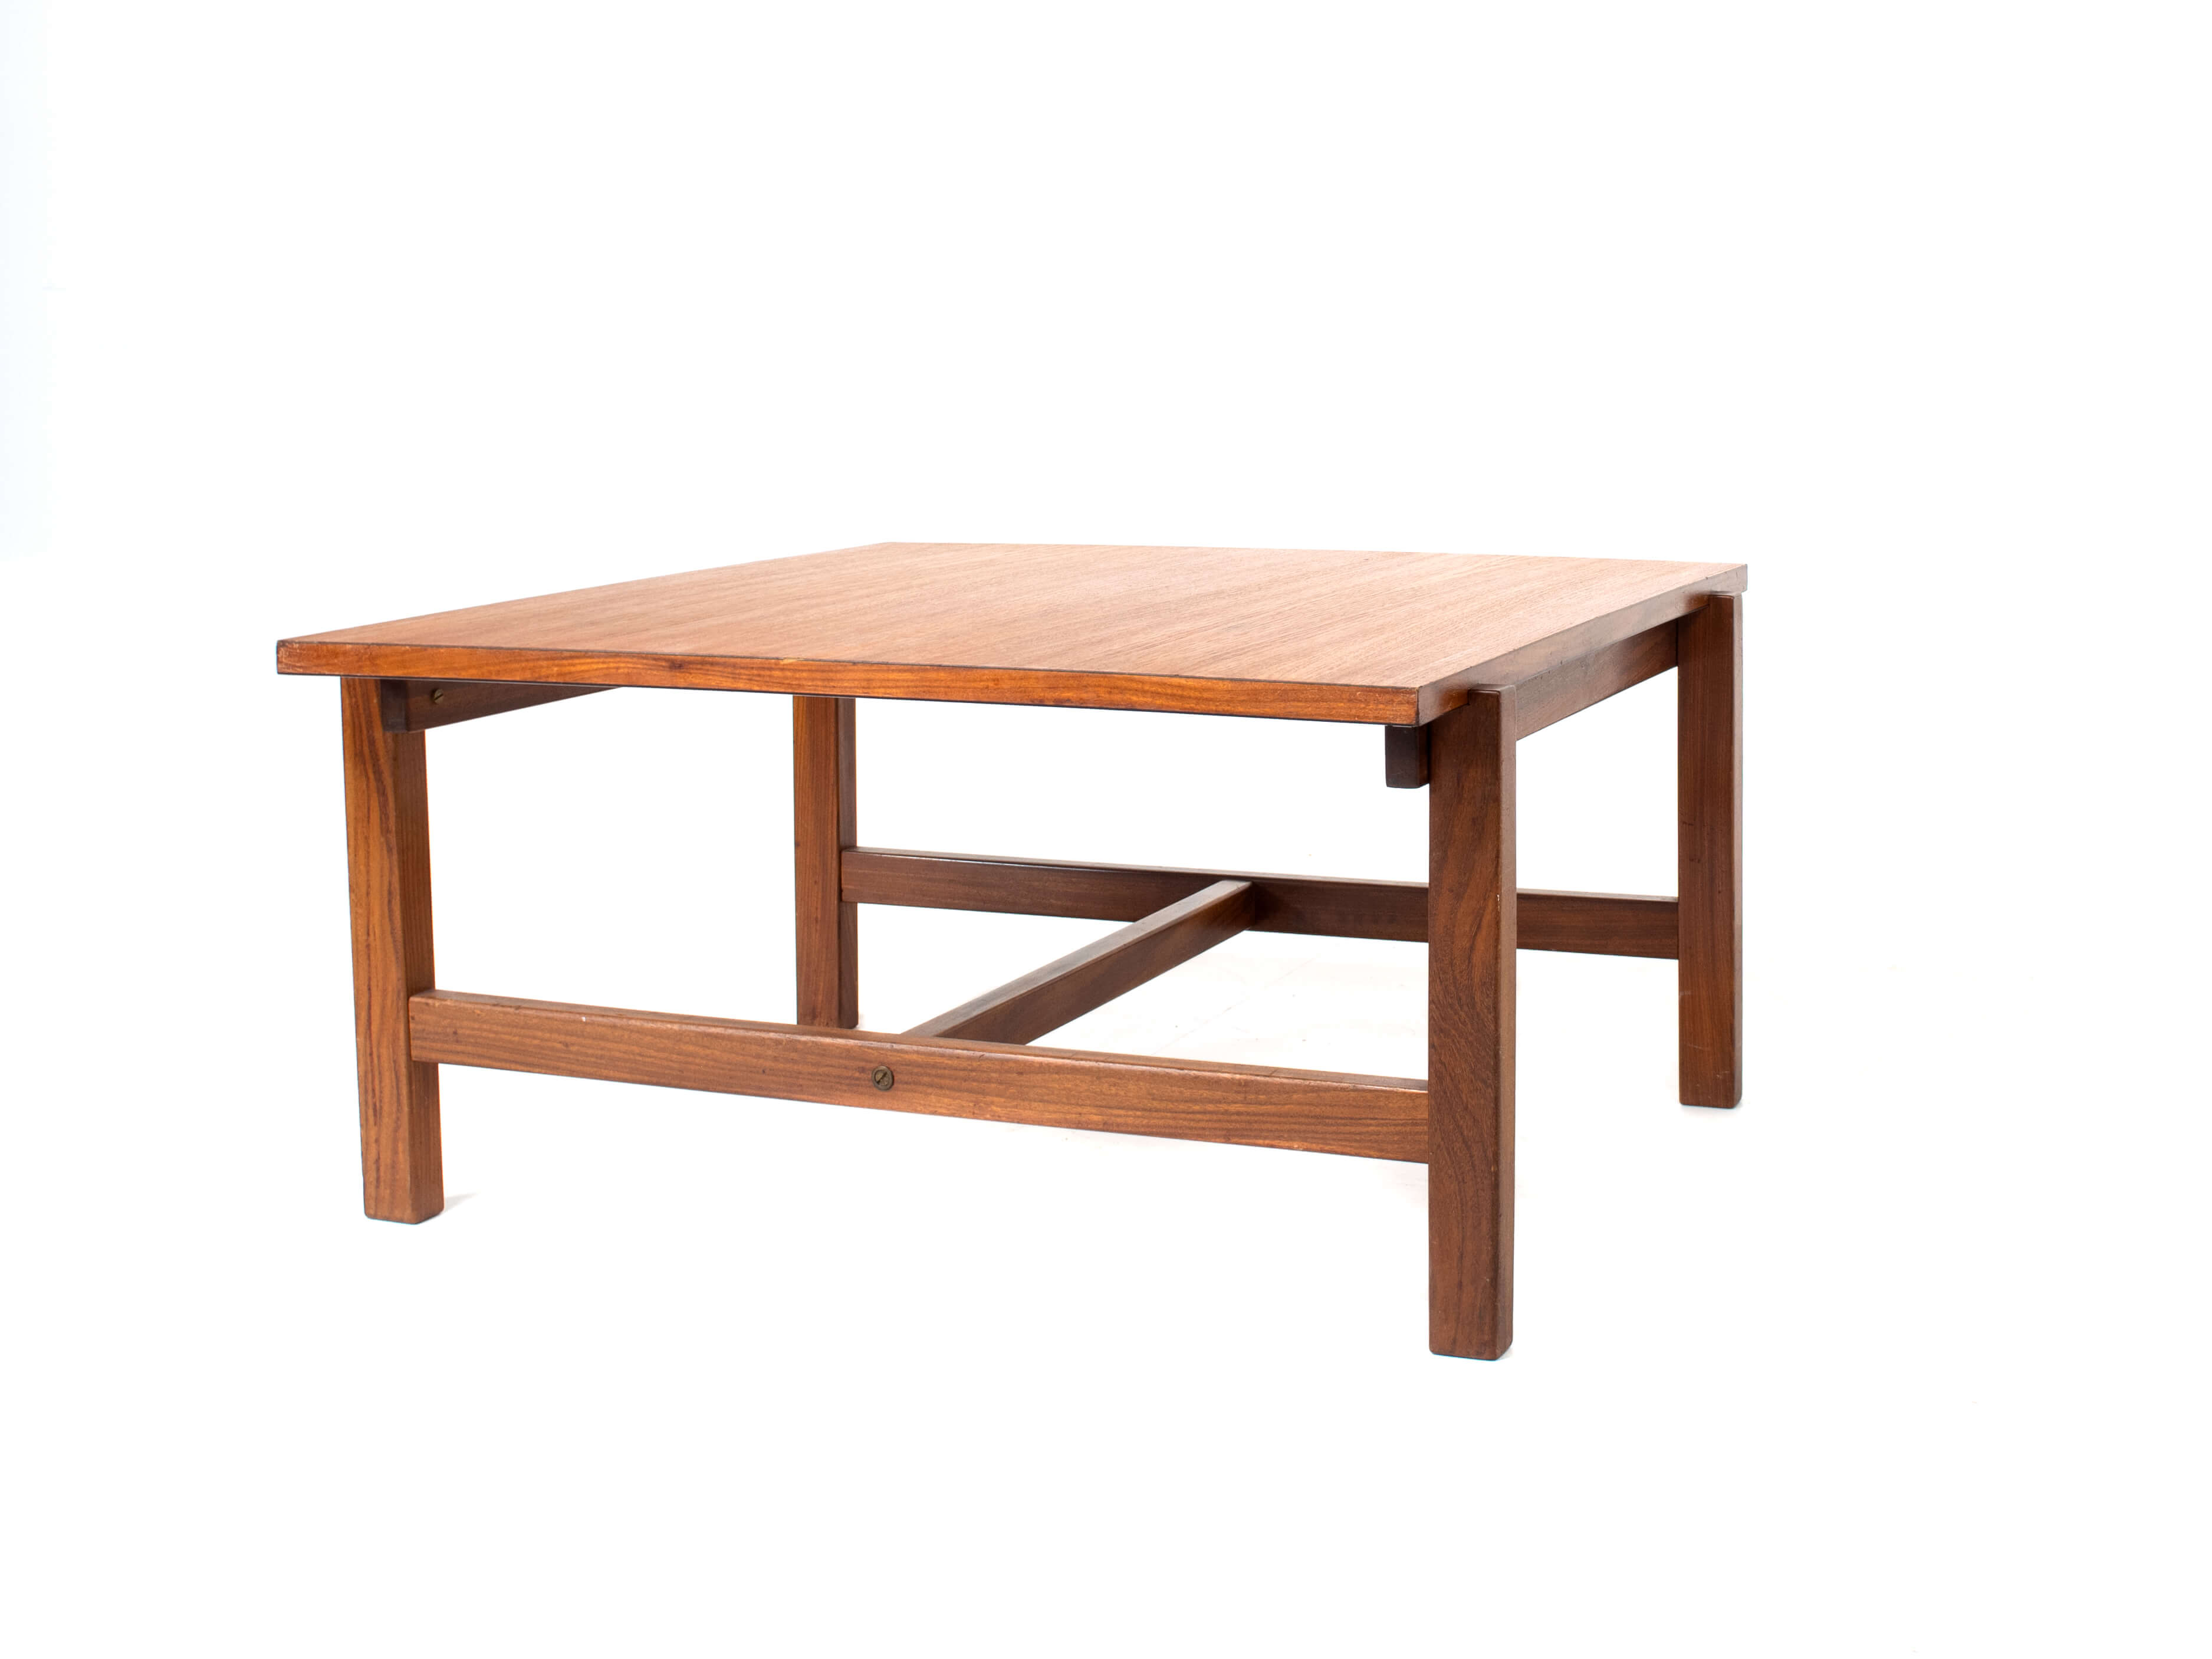 Pastoe Coffee Table Model TA 07 by Cees Braakman with Reversible Top, Netherlands 1950s